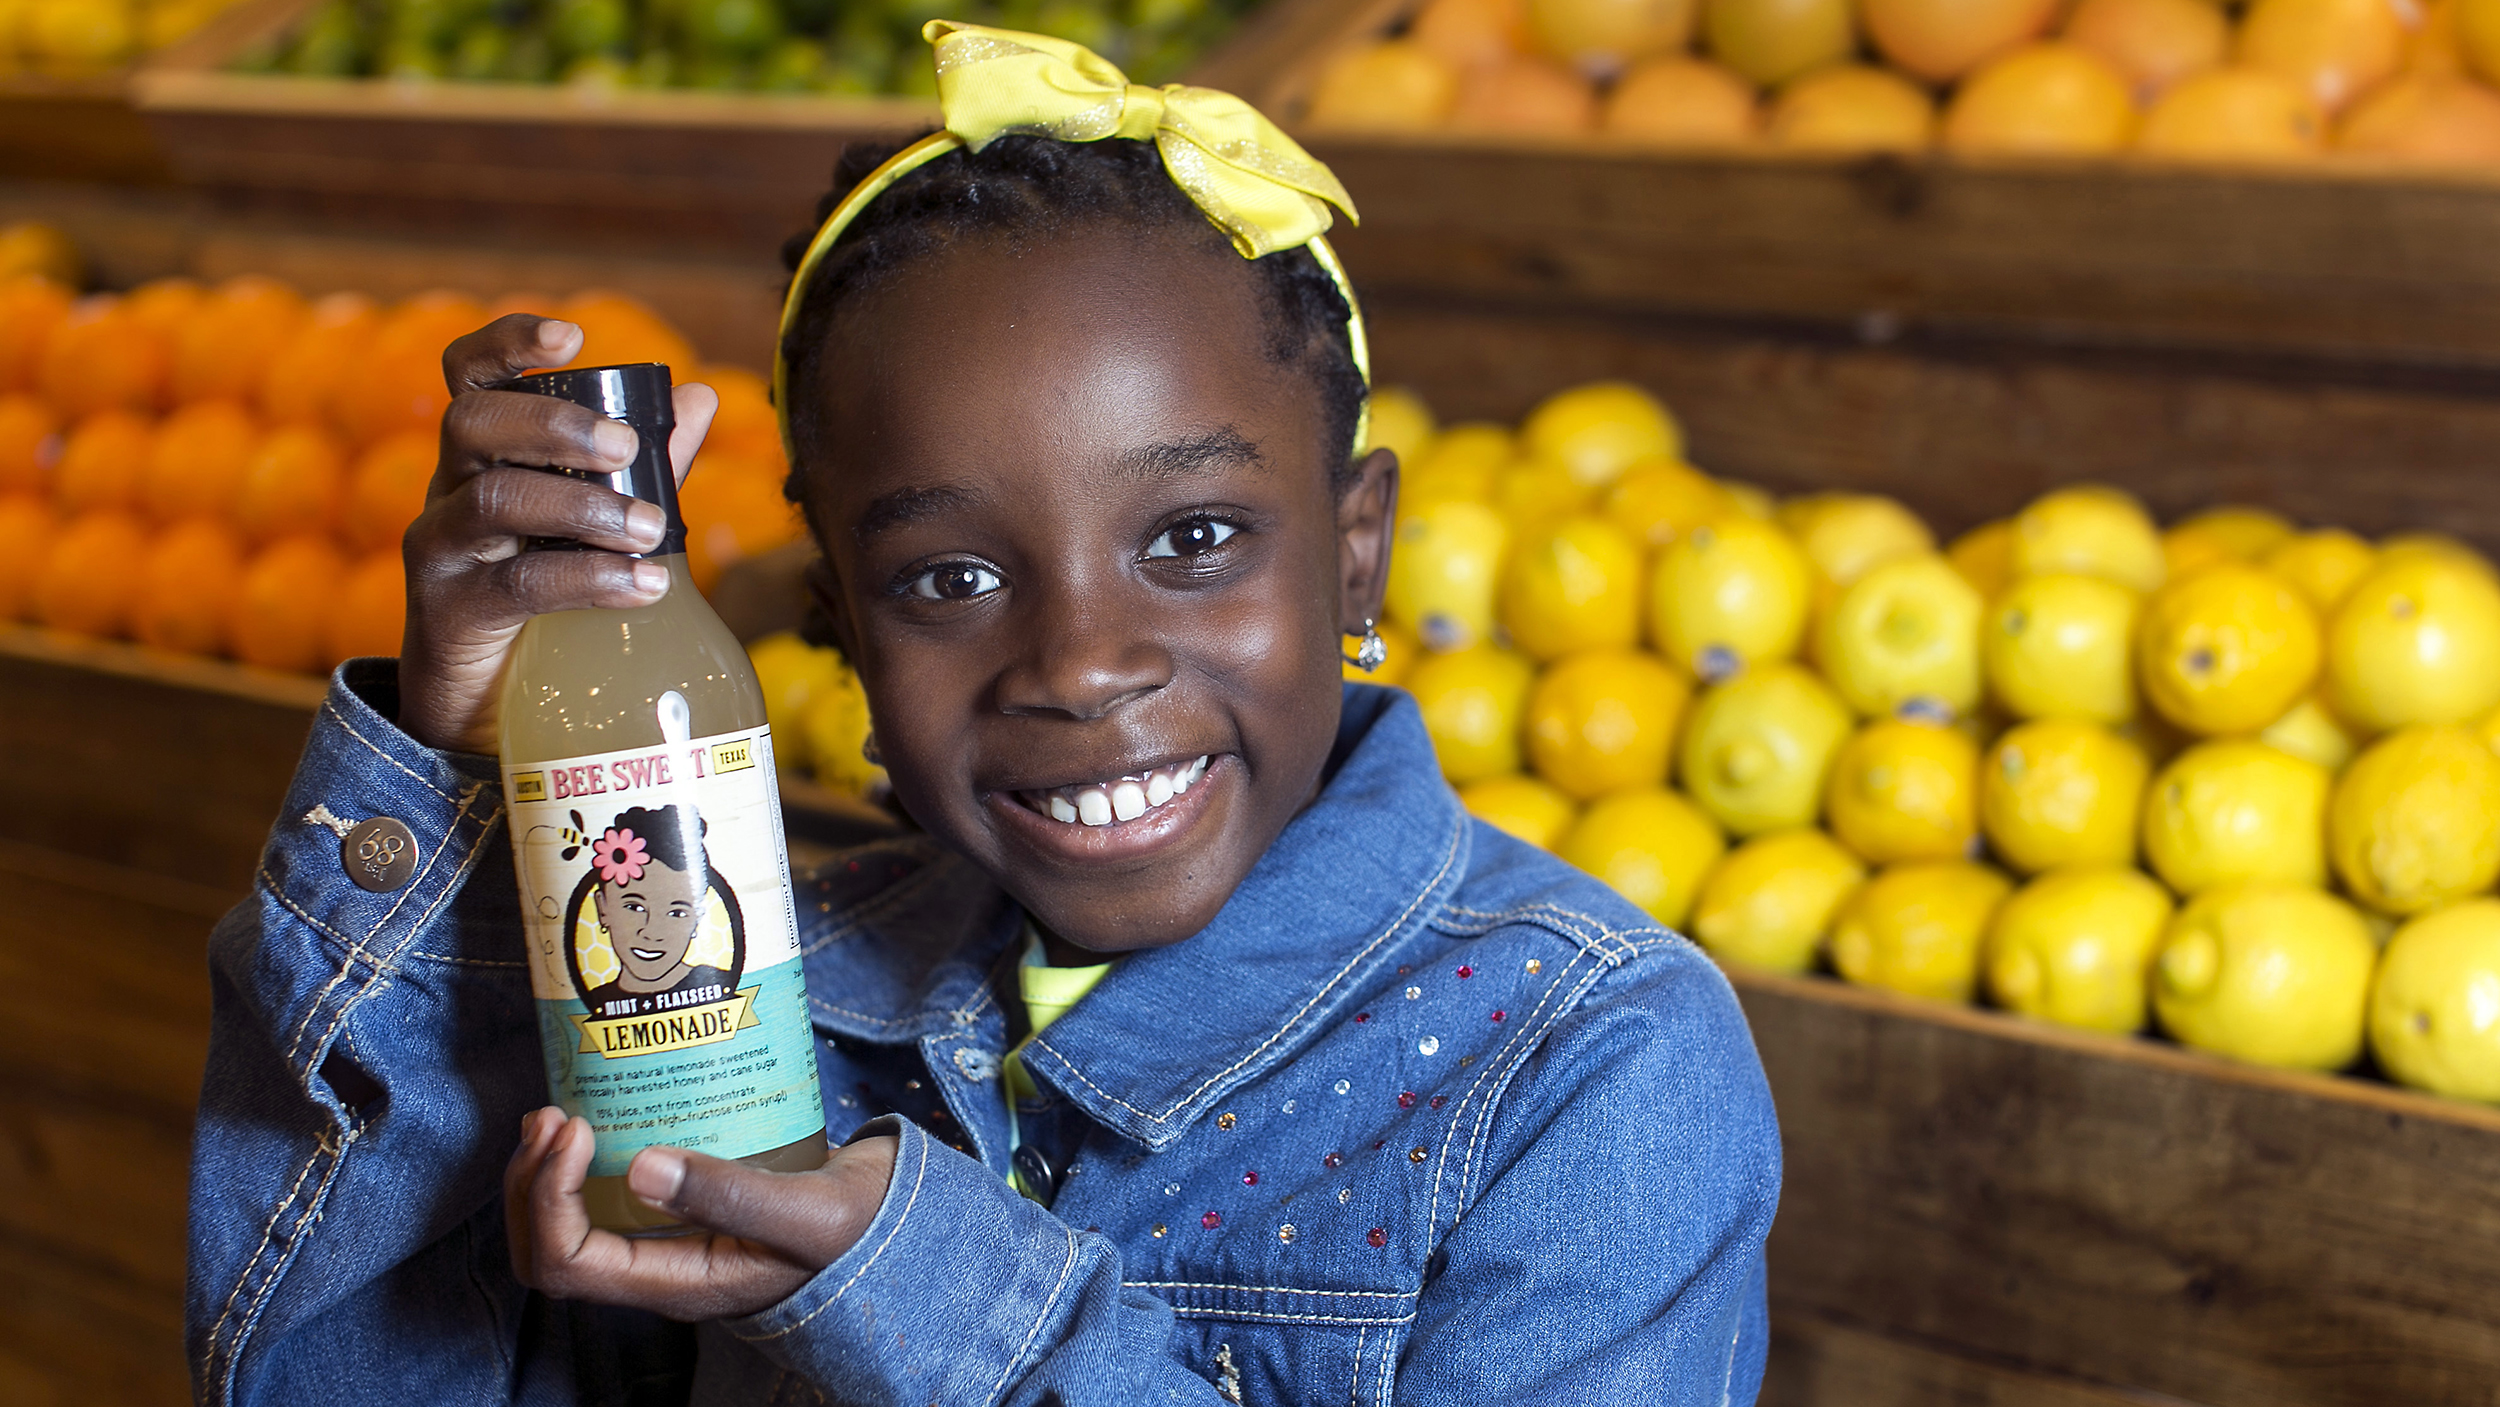 ADVANCE FOR RELEASE MONDAY, FEB. 24, 2014, AND THEREAFTER - In this Jan. 27, 2014 photo Mikaila Ulmer stands for a photo as she holds a bottle of Bee Sweet Lemonade that she and her family make and sell at Whole Foods at the Domain in Austin, Texas. The drink contains locally harvested honey and 20 percent of the proceeds go to organizations that help save honeybees. (AP Photo/Austin American-Statesman, Rodolfo Gonzalez) AUSTIN CHRONICLE OUT, COMMUNITY IMPACT OUT, INTERNET MUST CREDIT PHOTOGRAPHER AND STATESMAN.COM